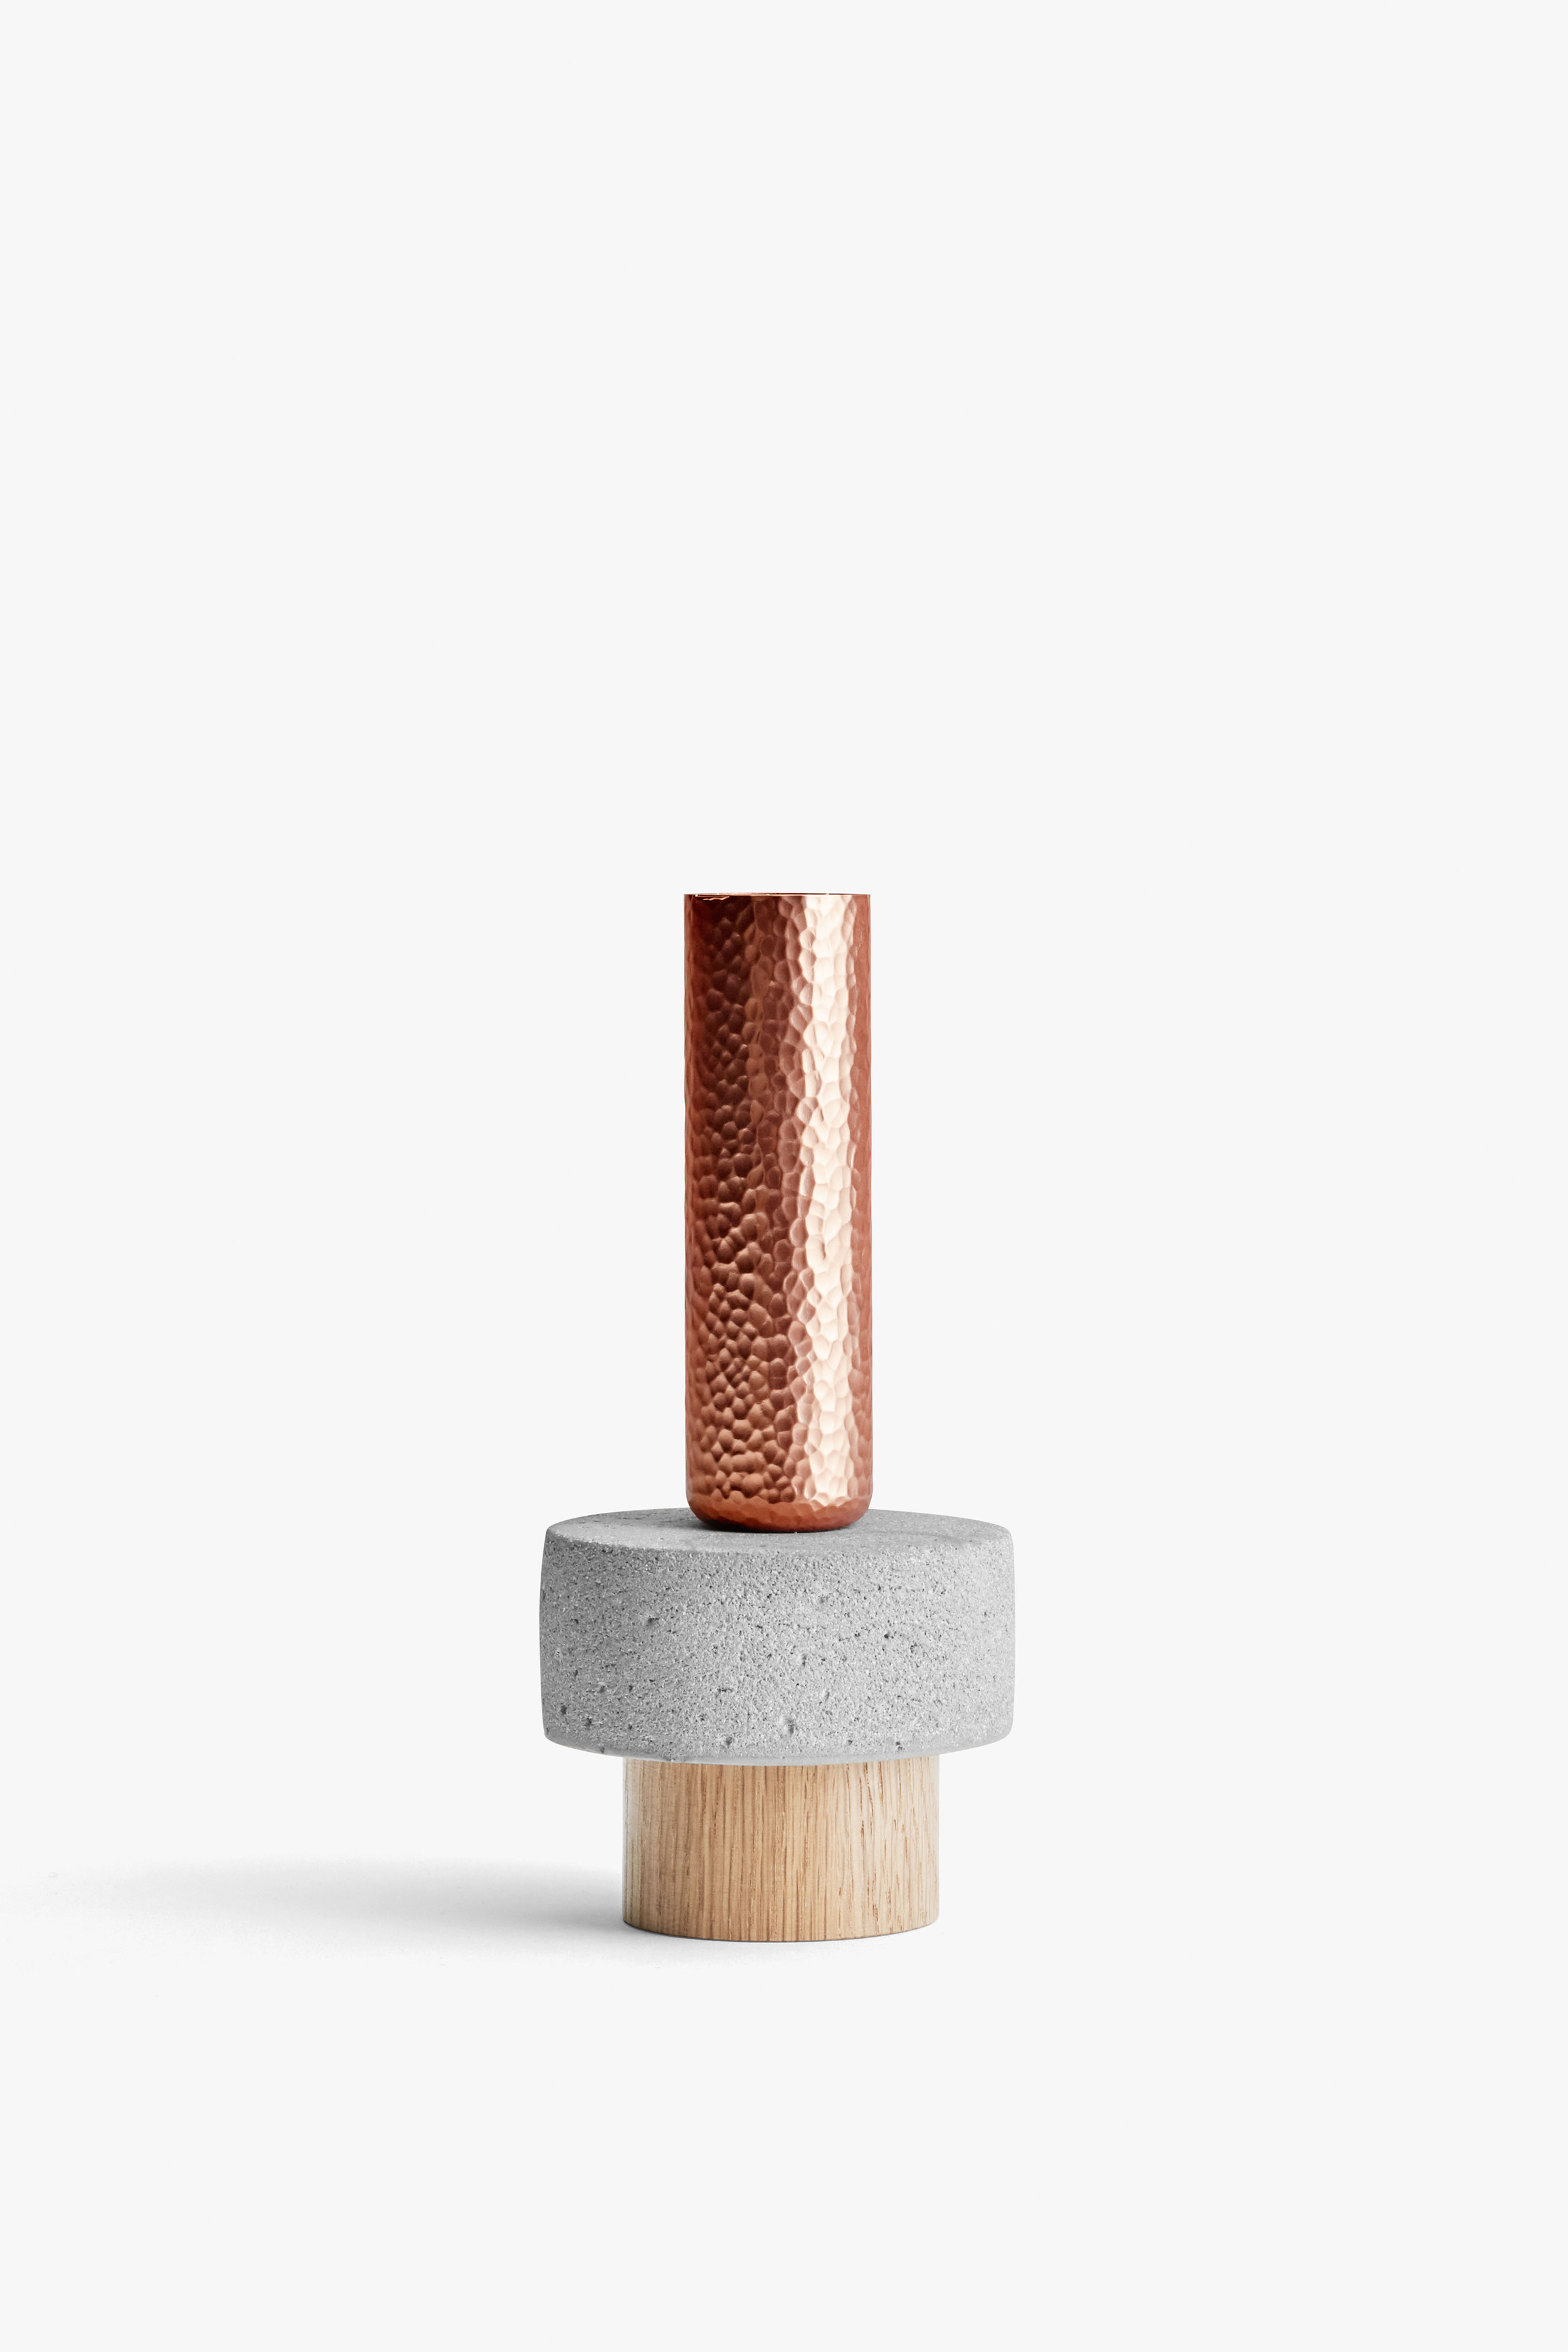 Crowd Candle Holder, Tall Stuart Concrete w. Wood Base, New Works, High Res.jpg